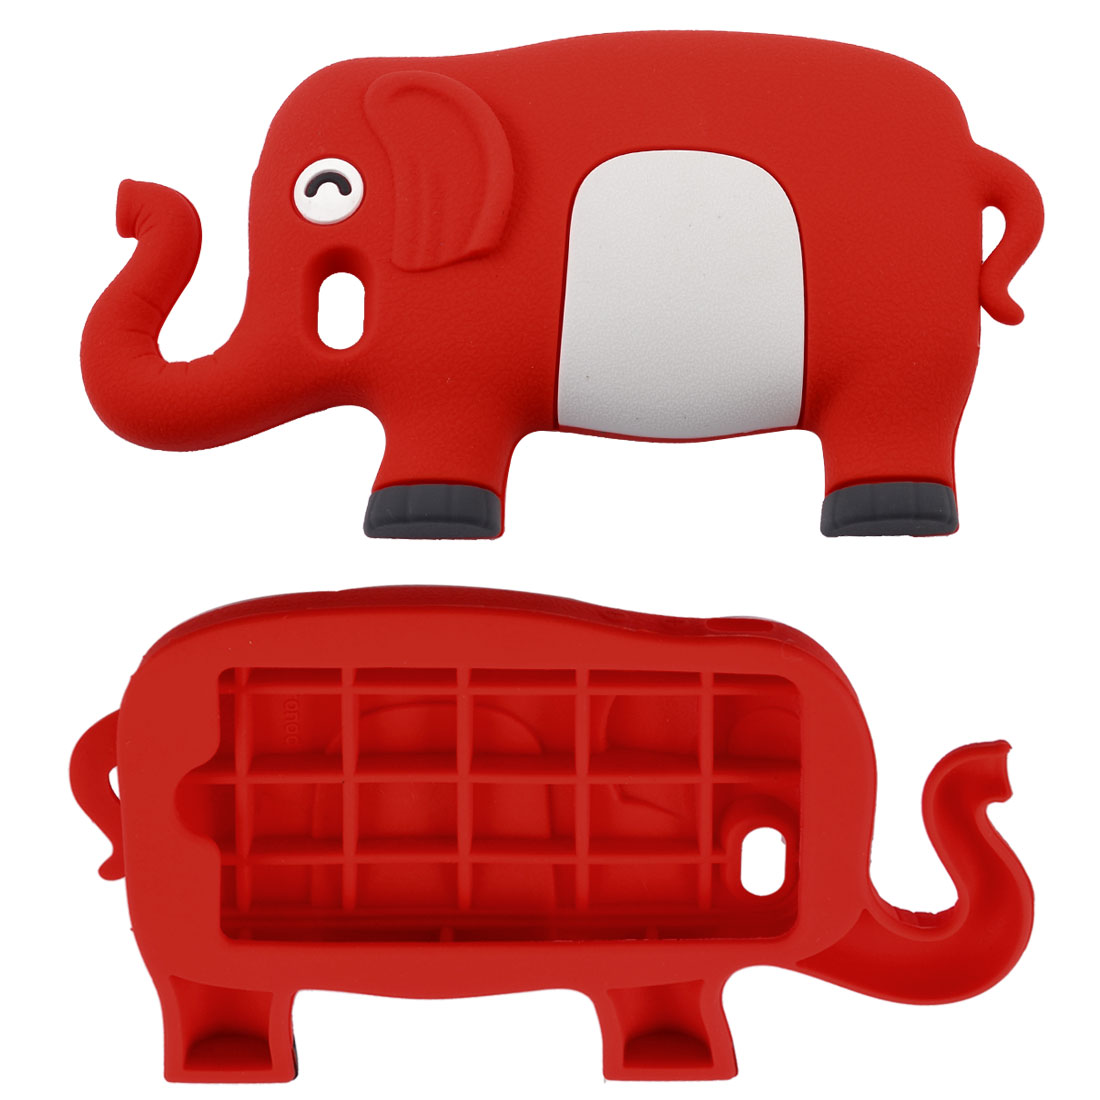 Red White Cartoon Elephant Silicone Soft Case Cover for iPhone 4 4G